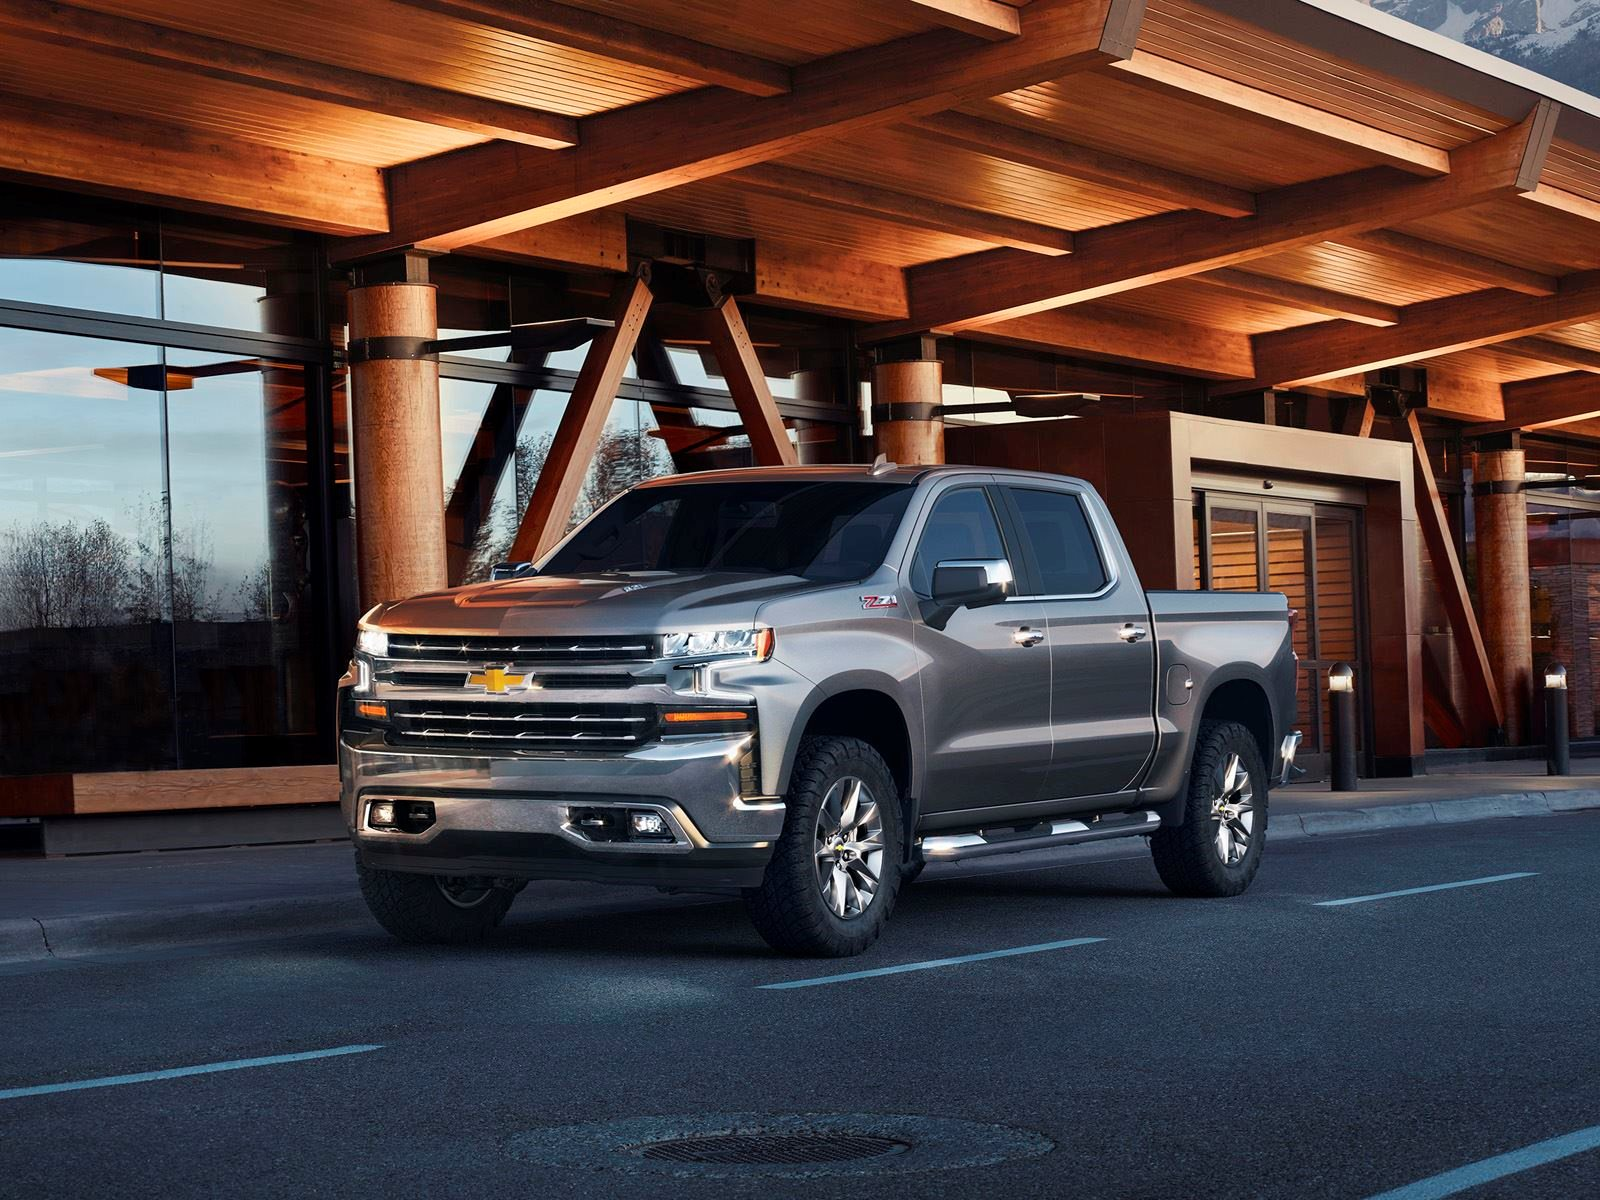 2019 Chevrolet Silverado Horsepower And Torque Numbers